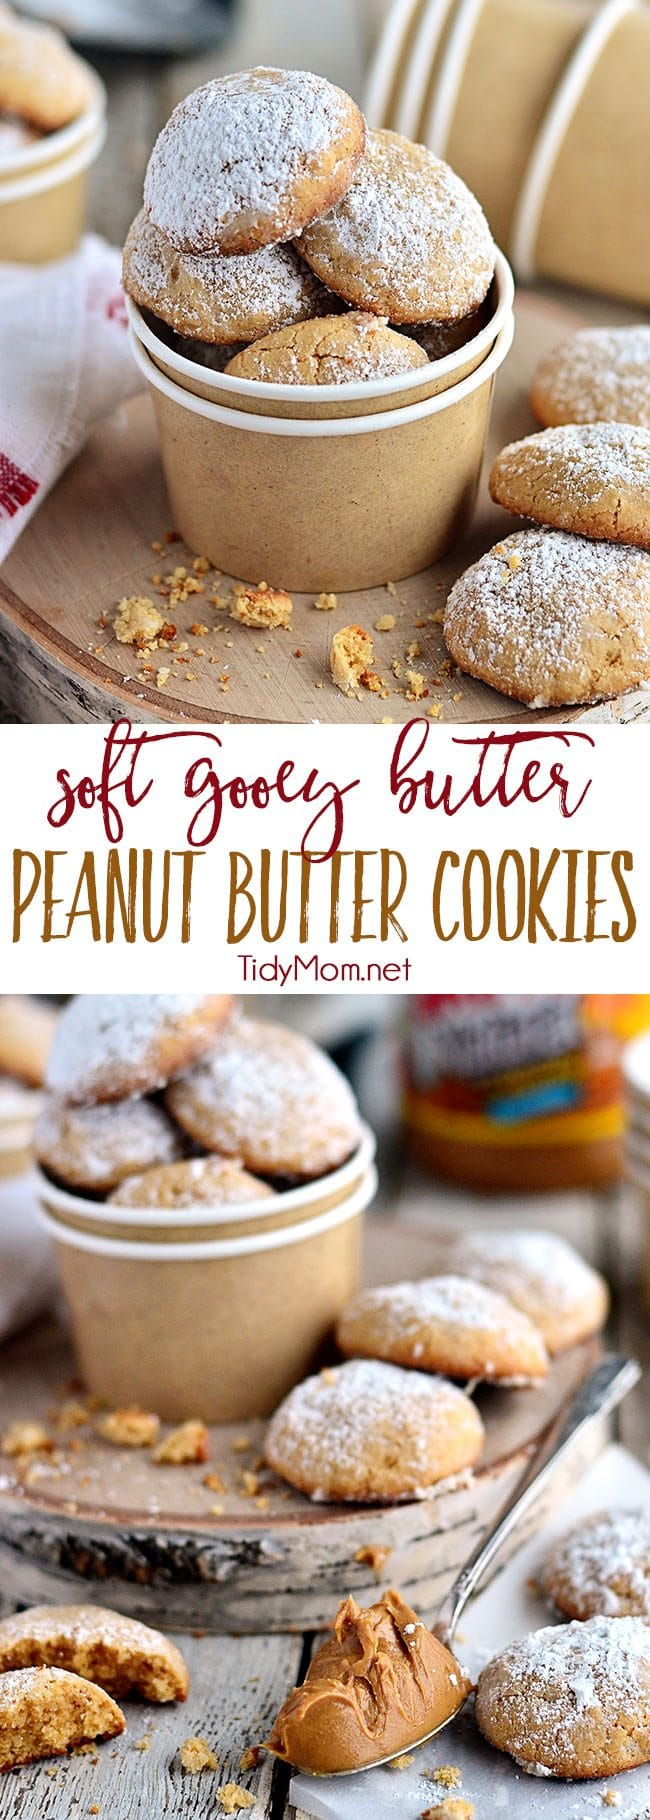 Gooey Butter Peanut Butter Cookies disappear fast! They are a peanut butter twist on the gooey butter cake made into a soft delicious peanut butter cookies. What's not to love about a cookie with butter in the name TWICE?! Print the delicious full recipe at TidyMom.net